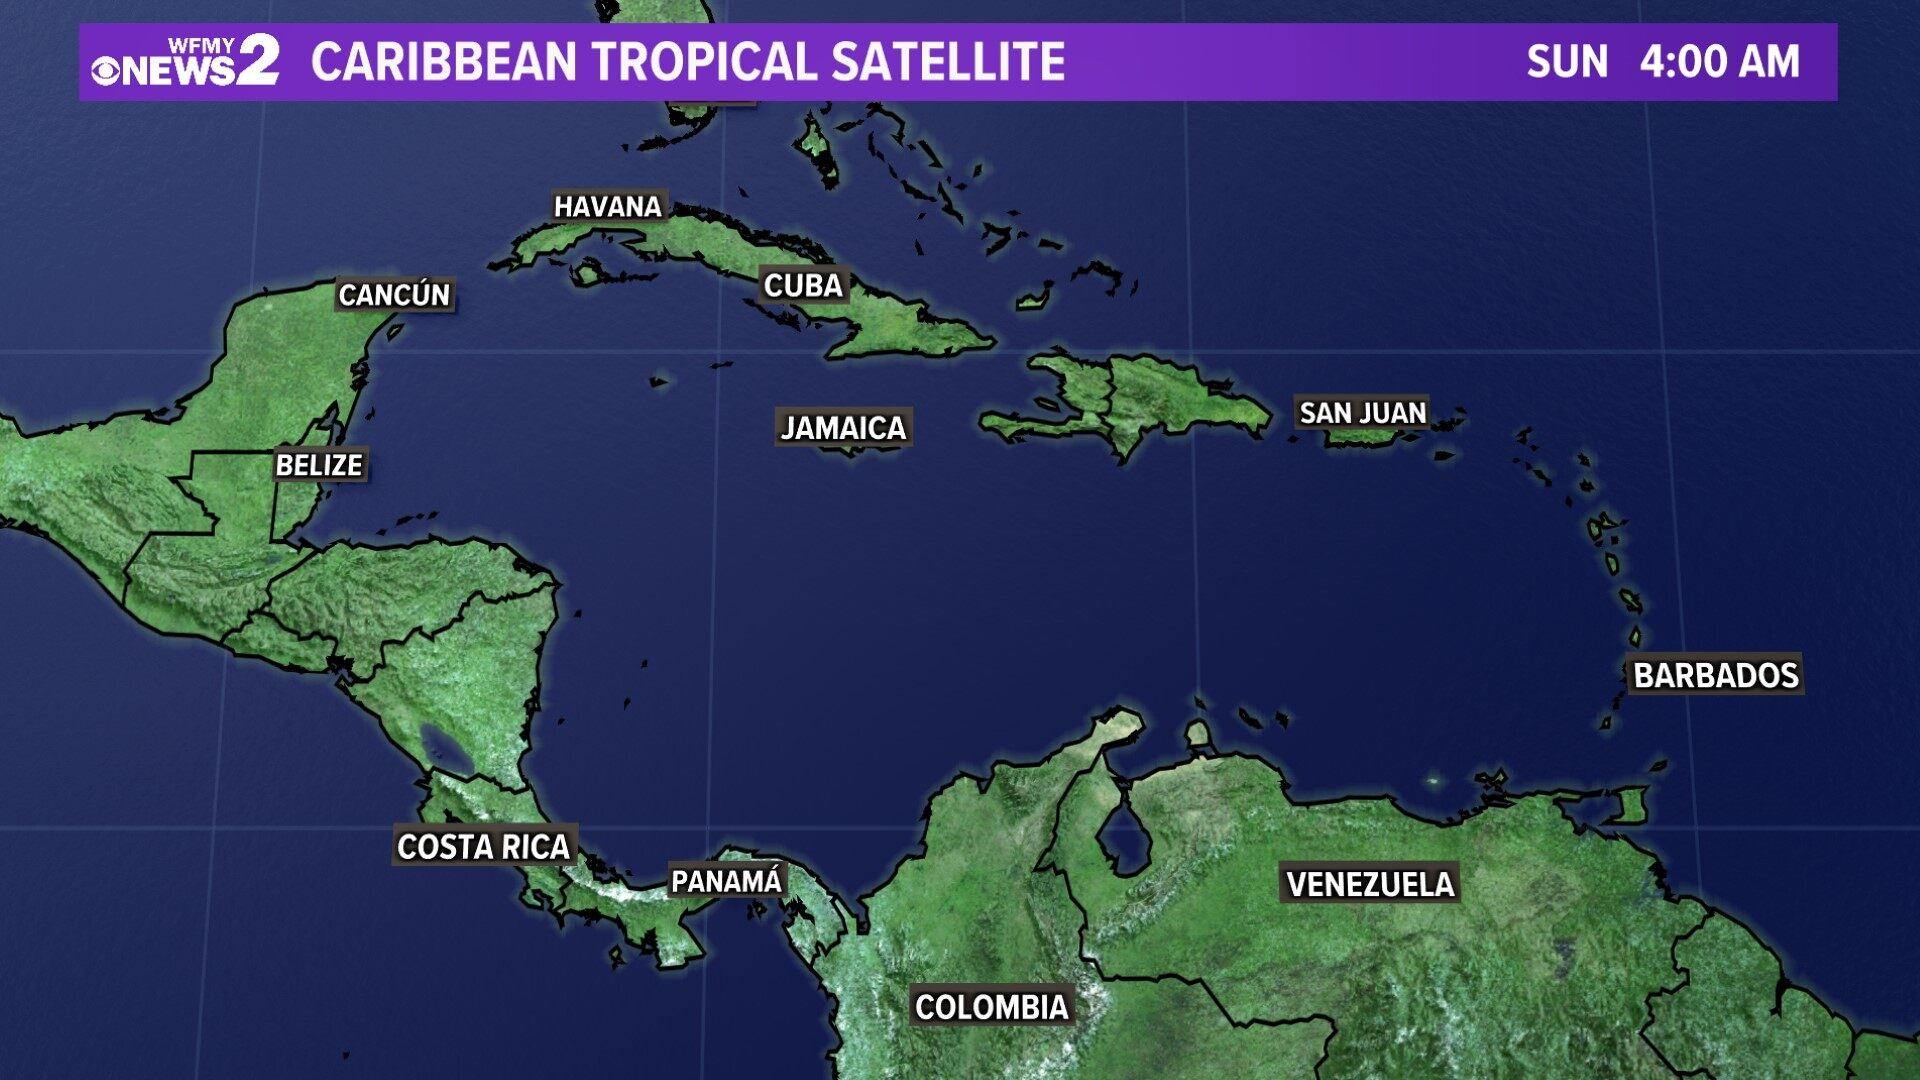 Tropical Satellite Caribbean